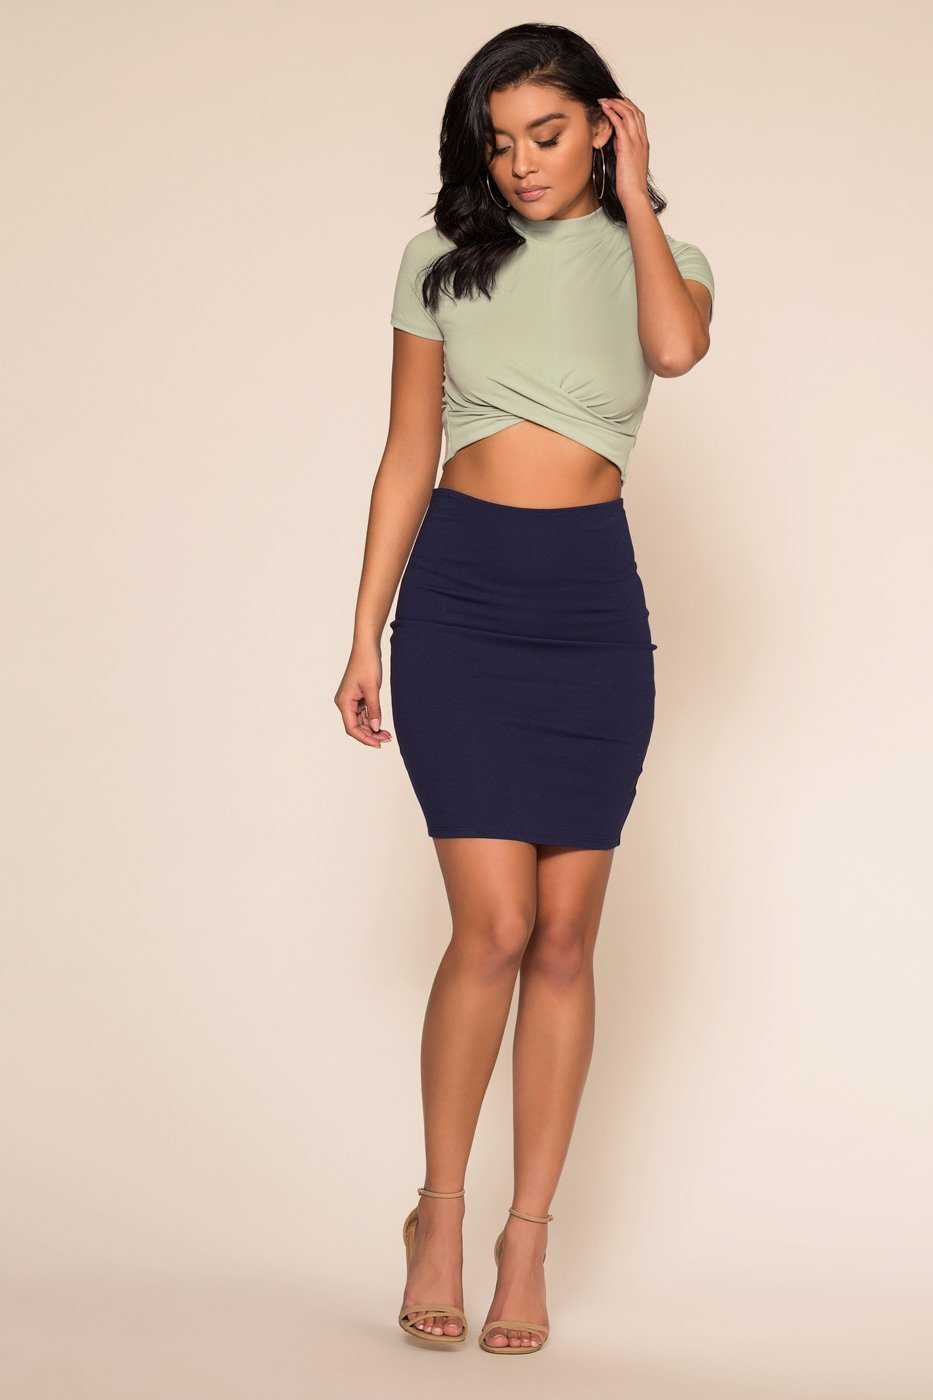 Tops - Blakely Crop Top - Sage